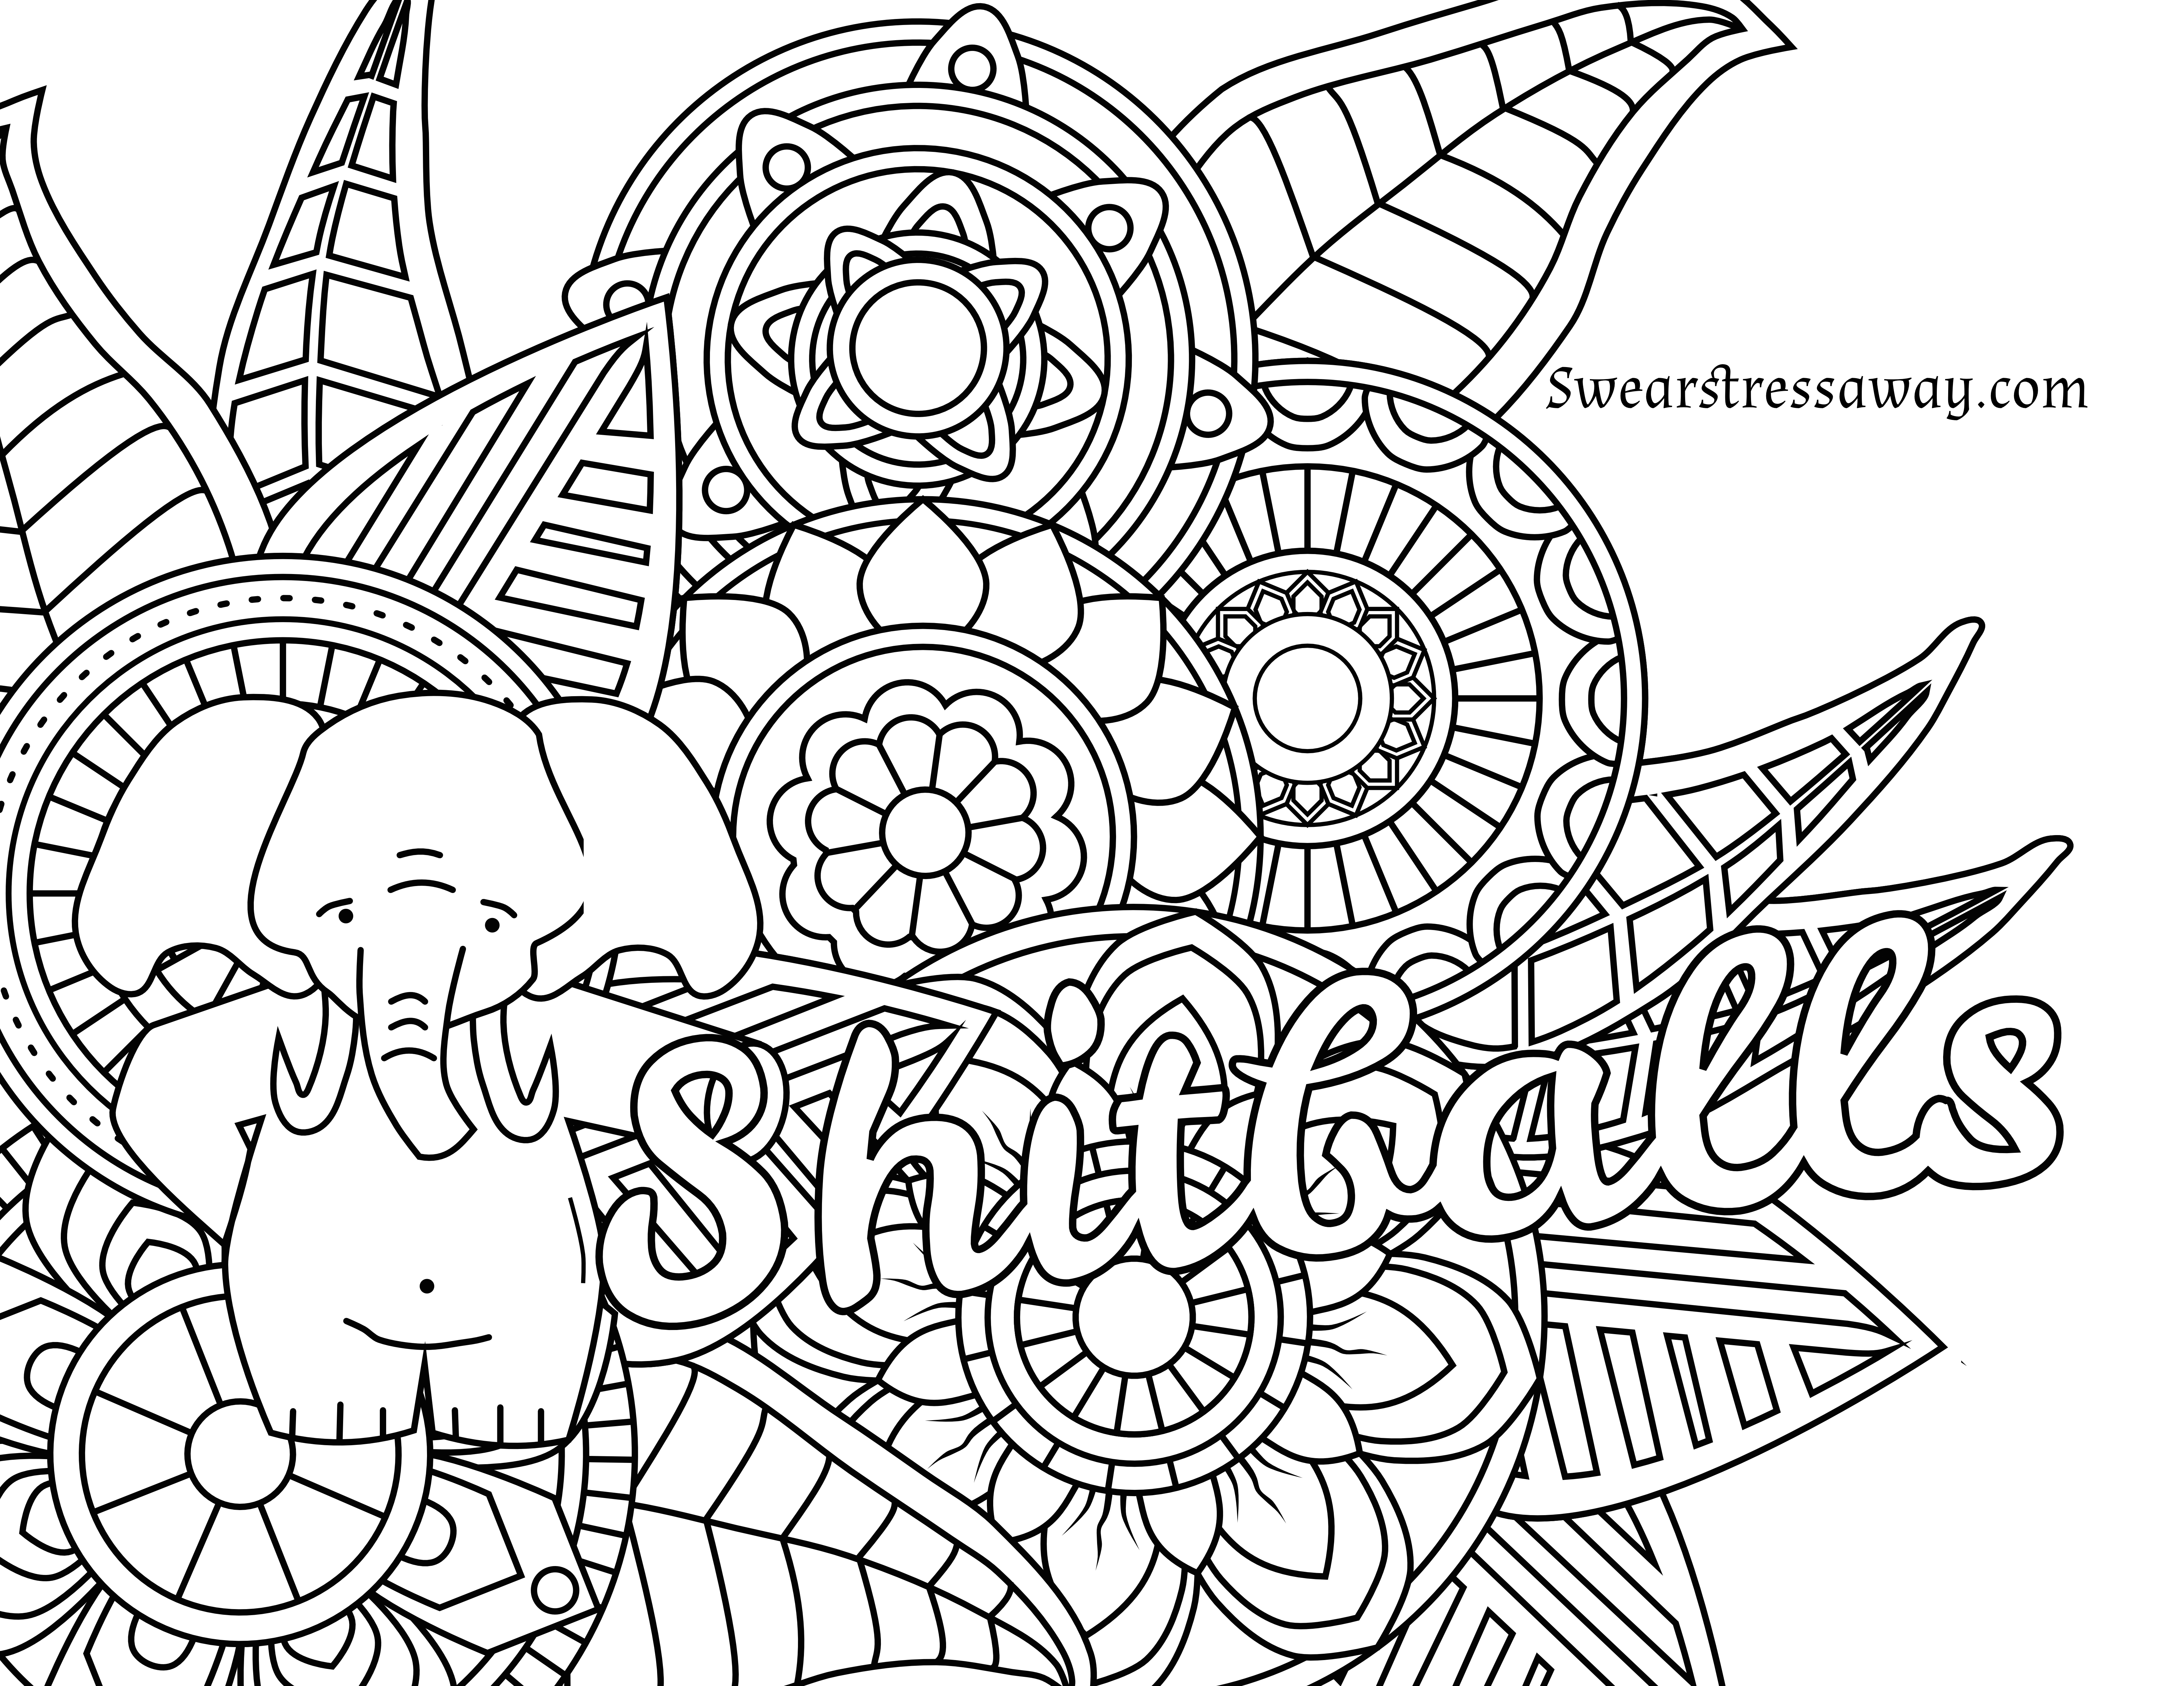 Coloring Pages : Free Printable Coloring Pages Adults Quotes For - Free Printable Coloring Pages For Adults